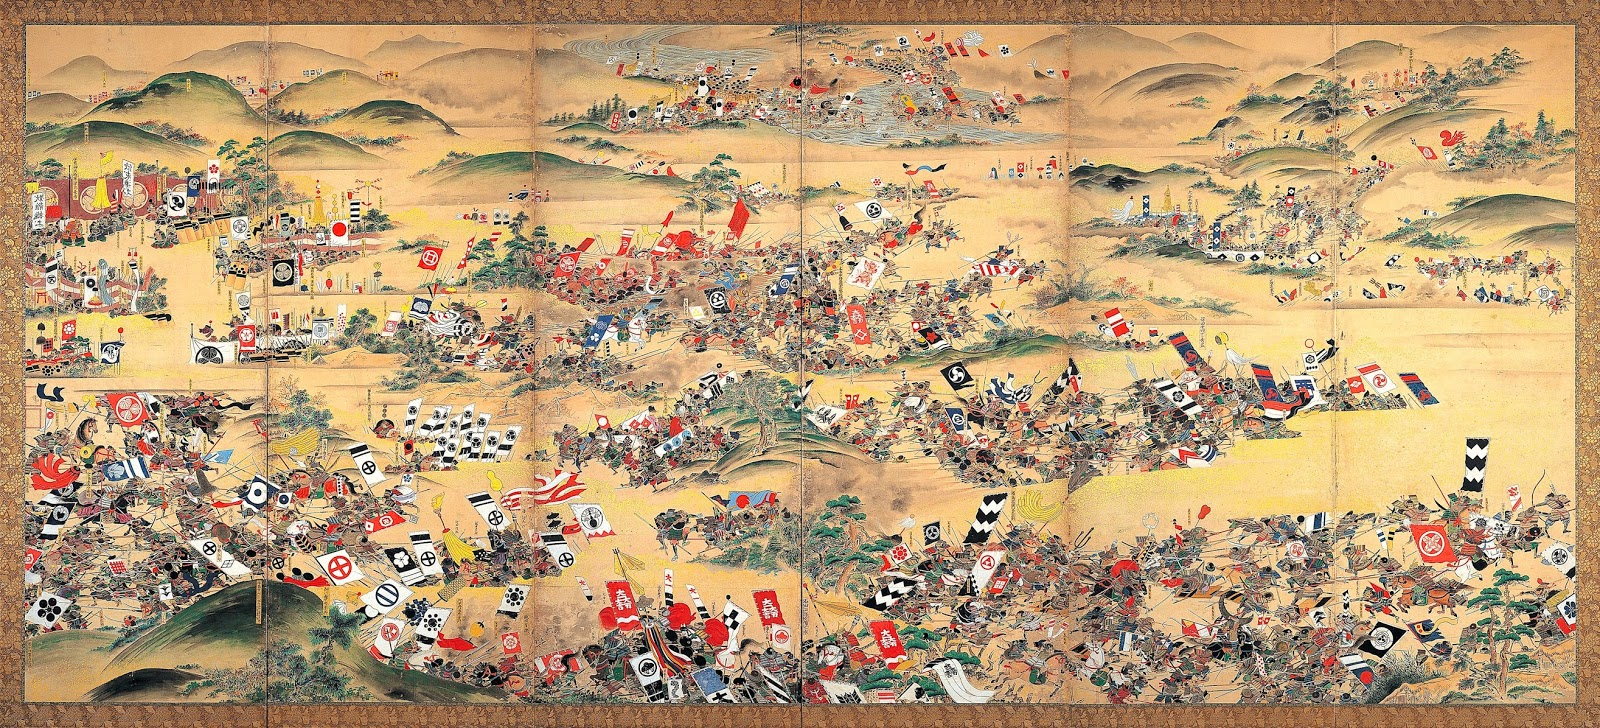 Sengoku Period Warfare: Part 1 - Army and Battle Formations